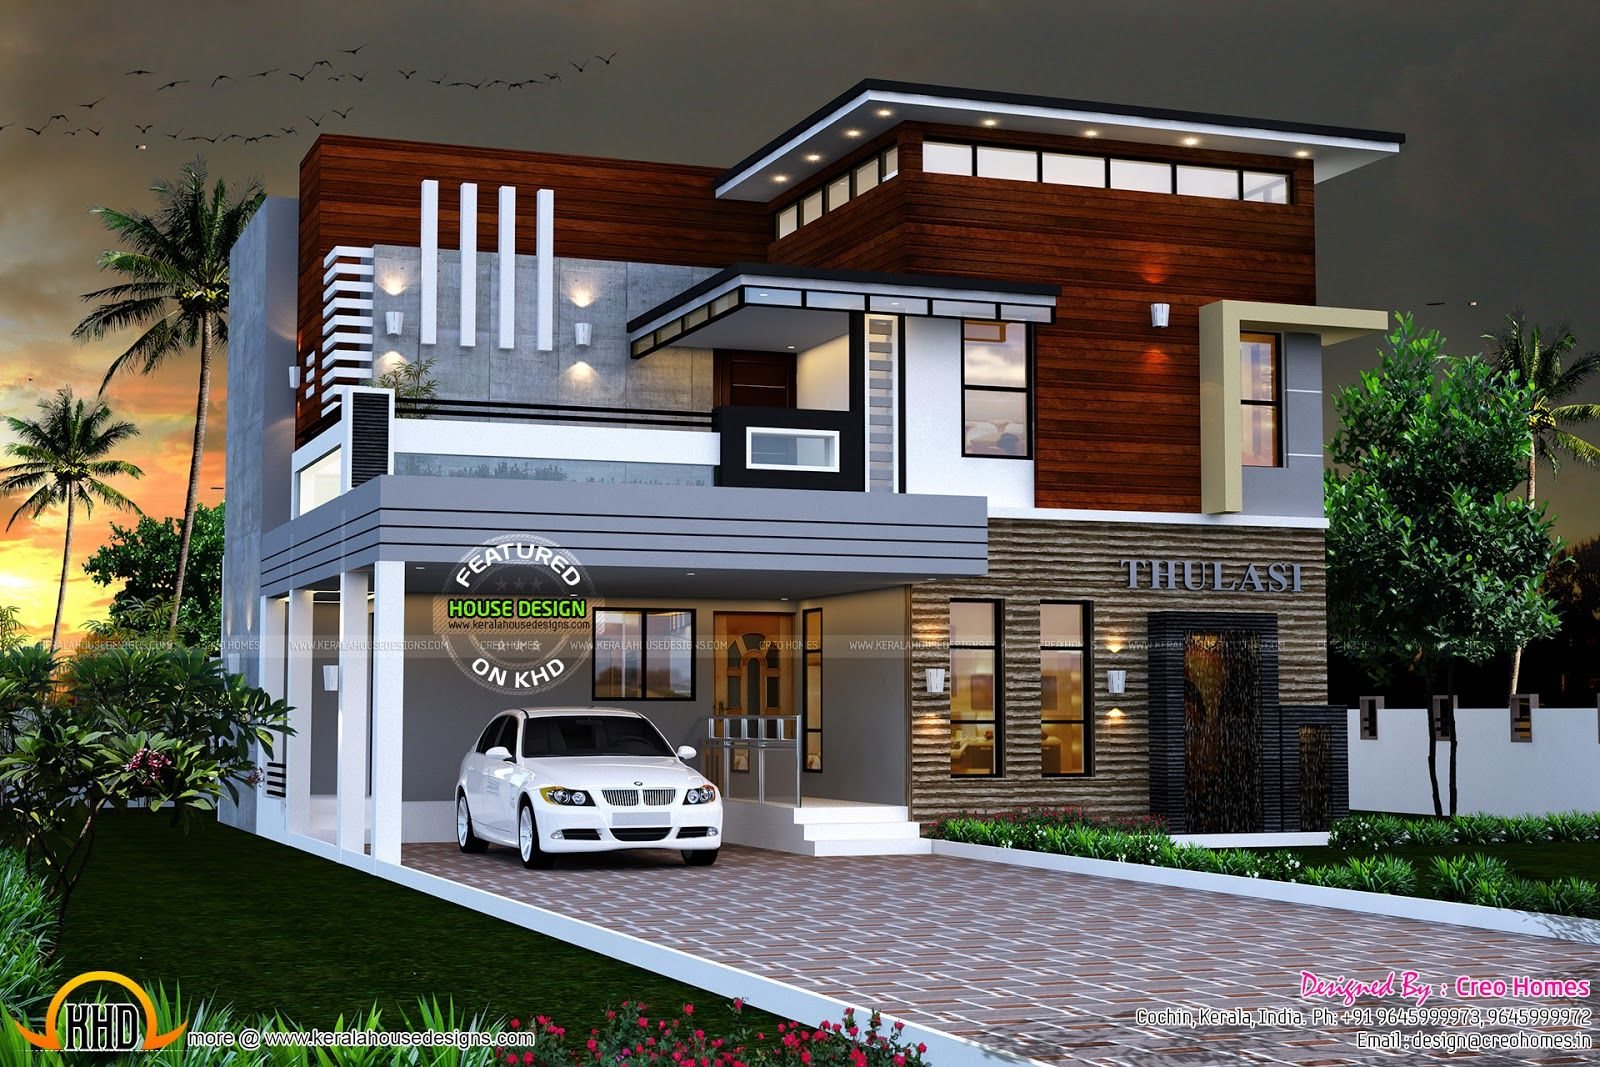 Eterior design modern small house architecture building for Small modern home plans